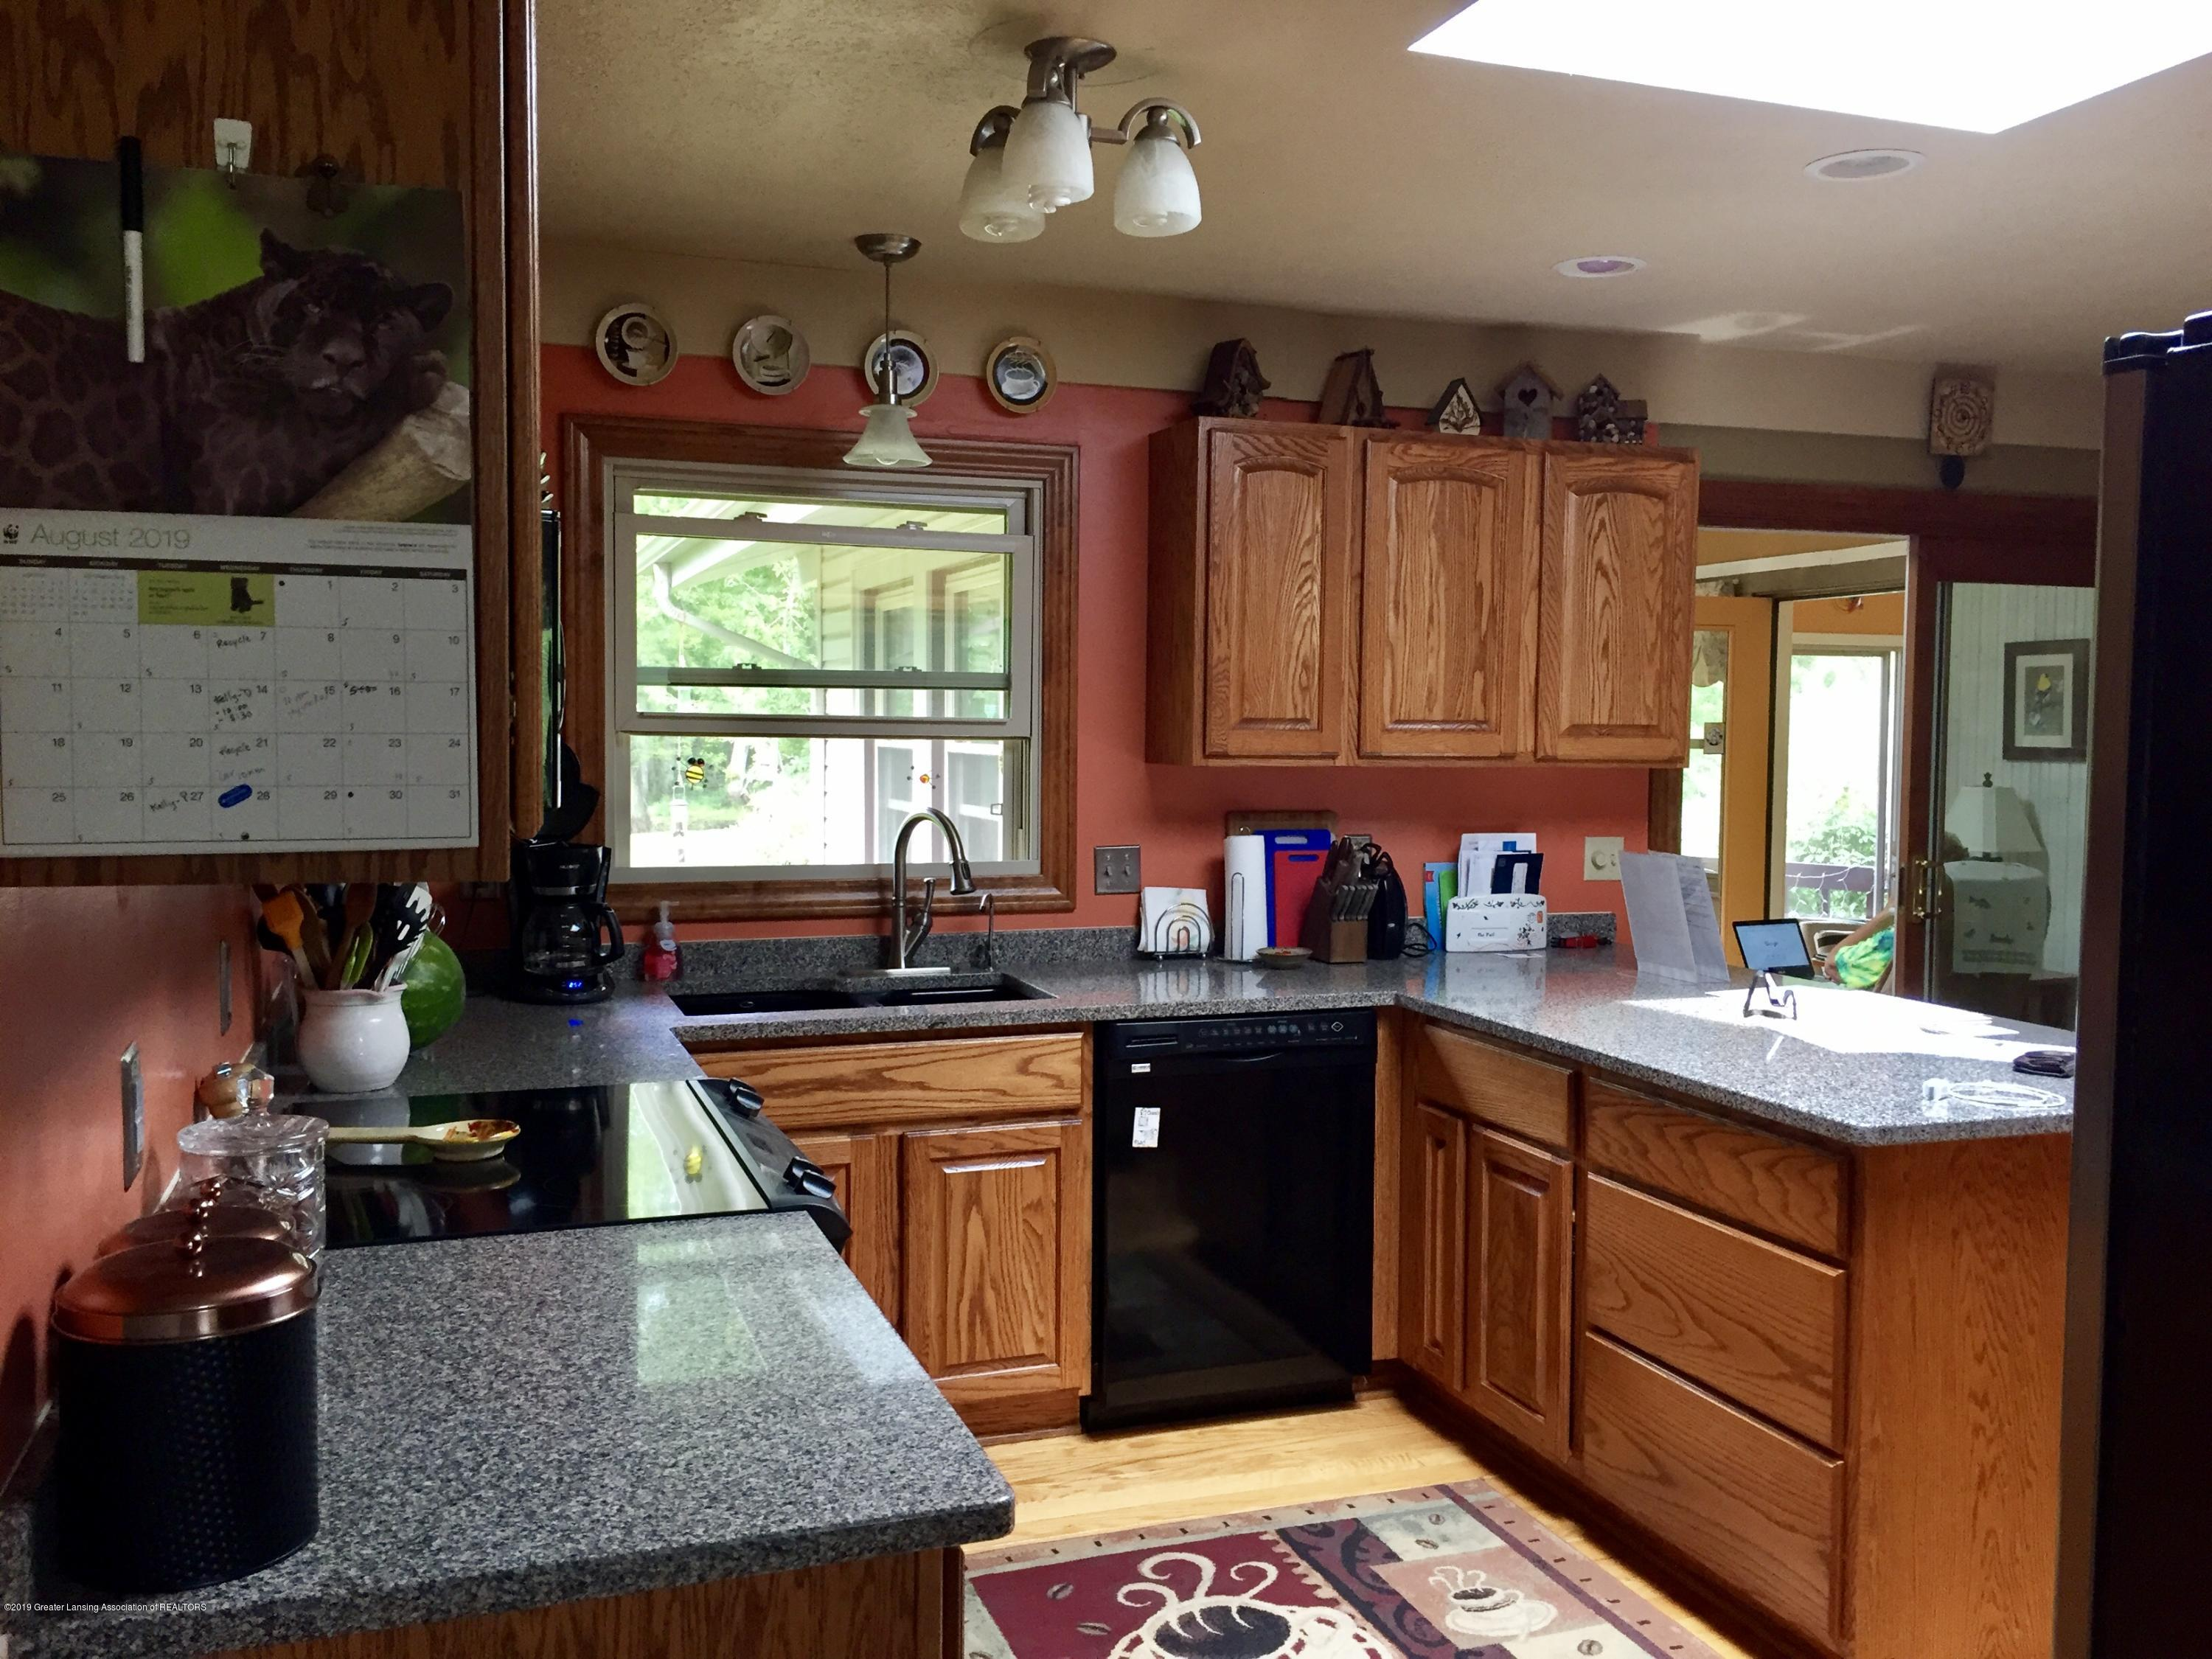 805 E Dill Dr - Updted Kitchen - 62